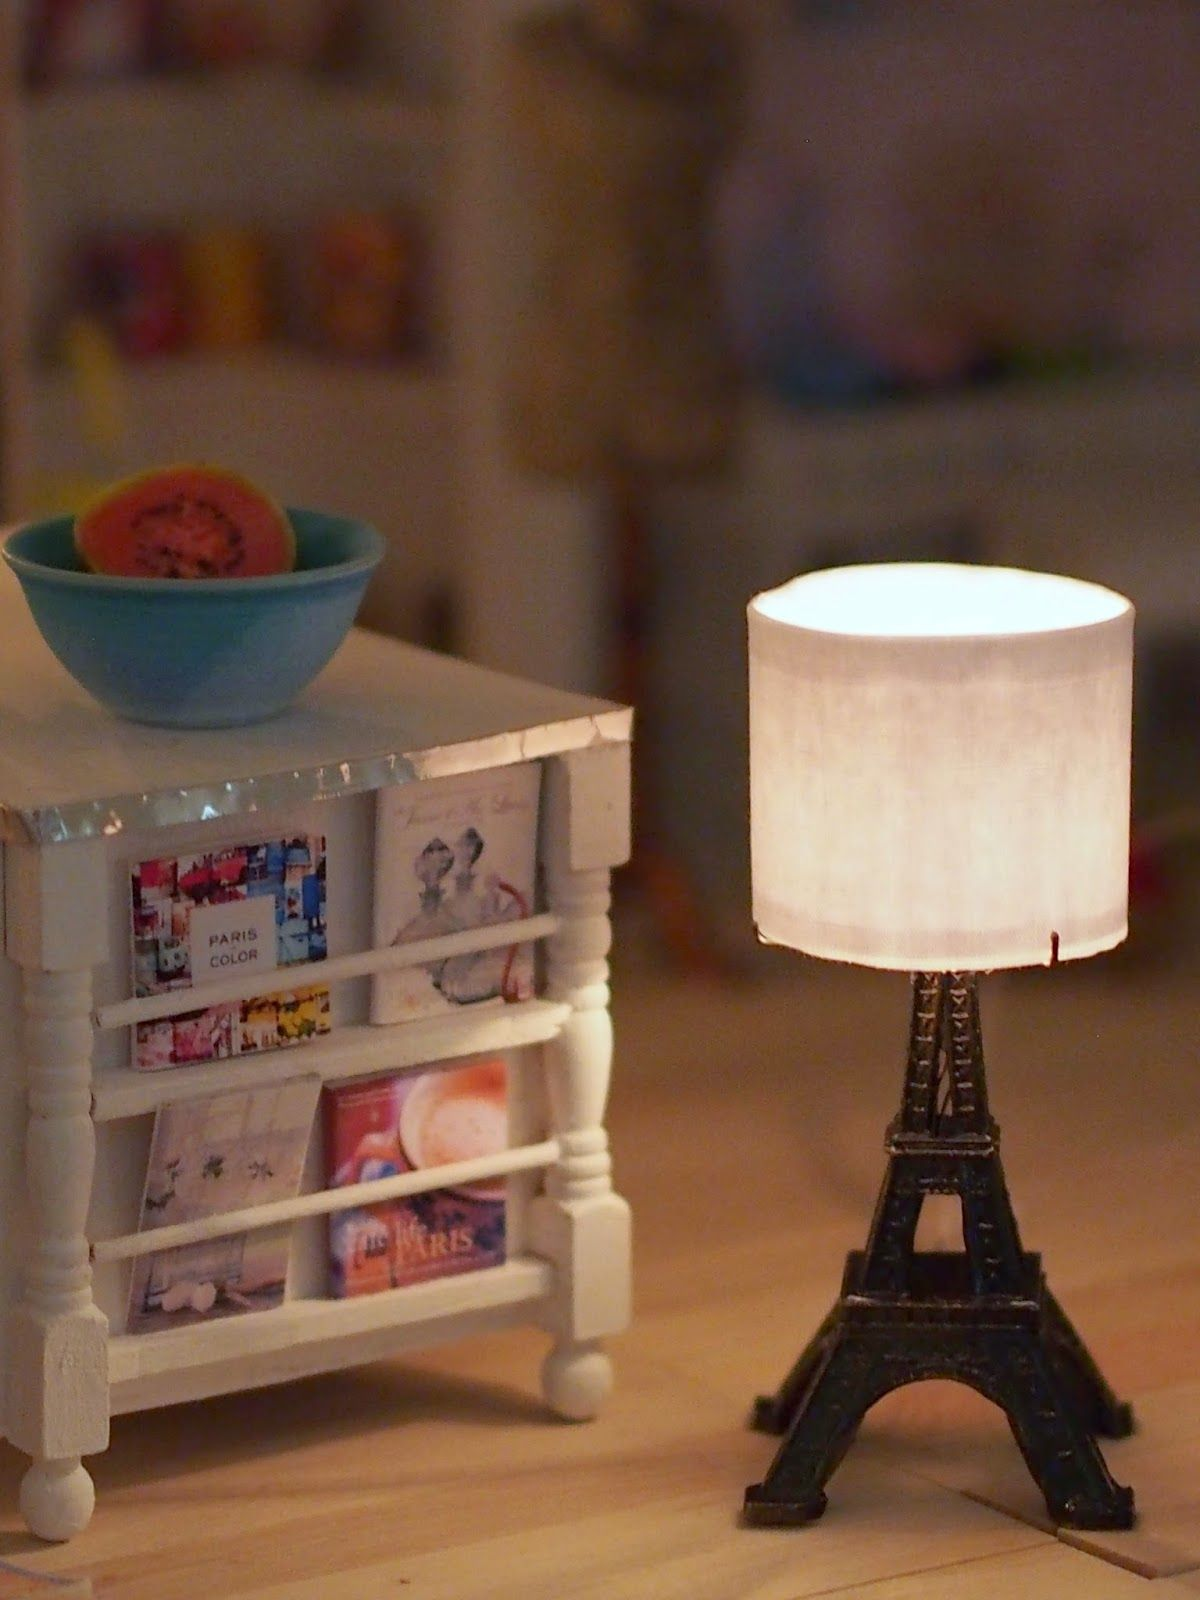 Dormitorio Barbie How To Miniature Eiffel Tower Lamp Dyi Lámpara De La